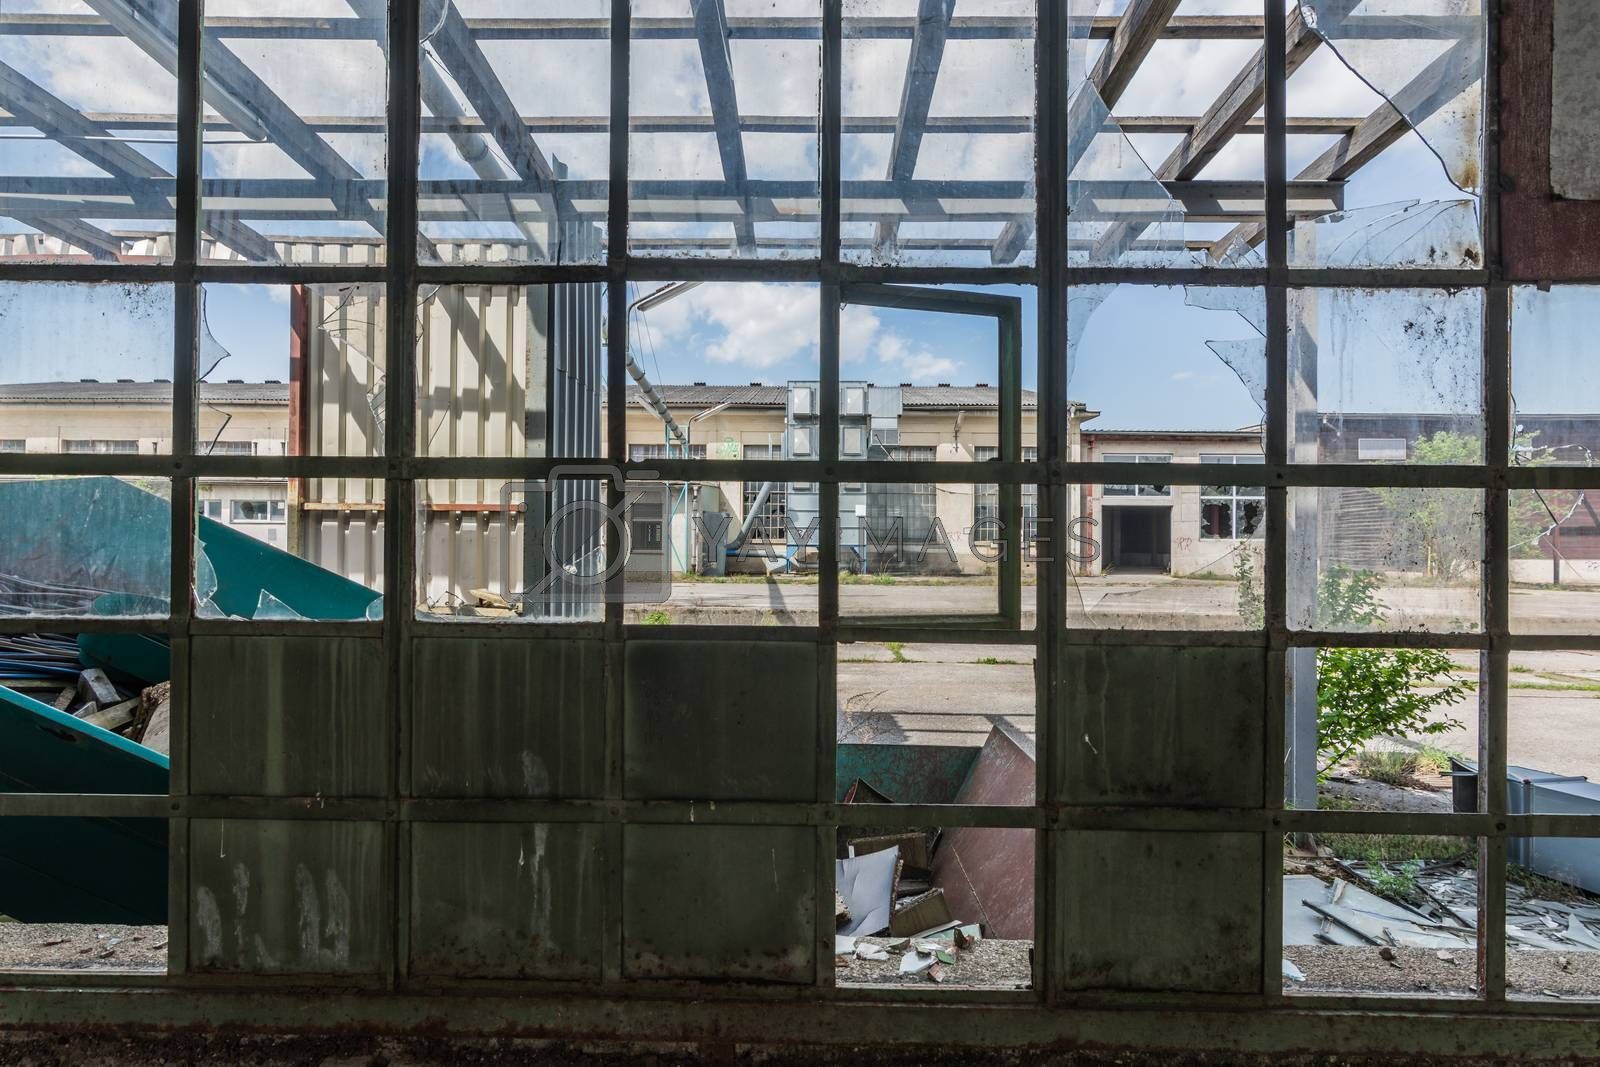 broken large window with a view of a factory building